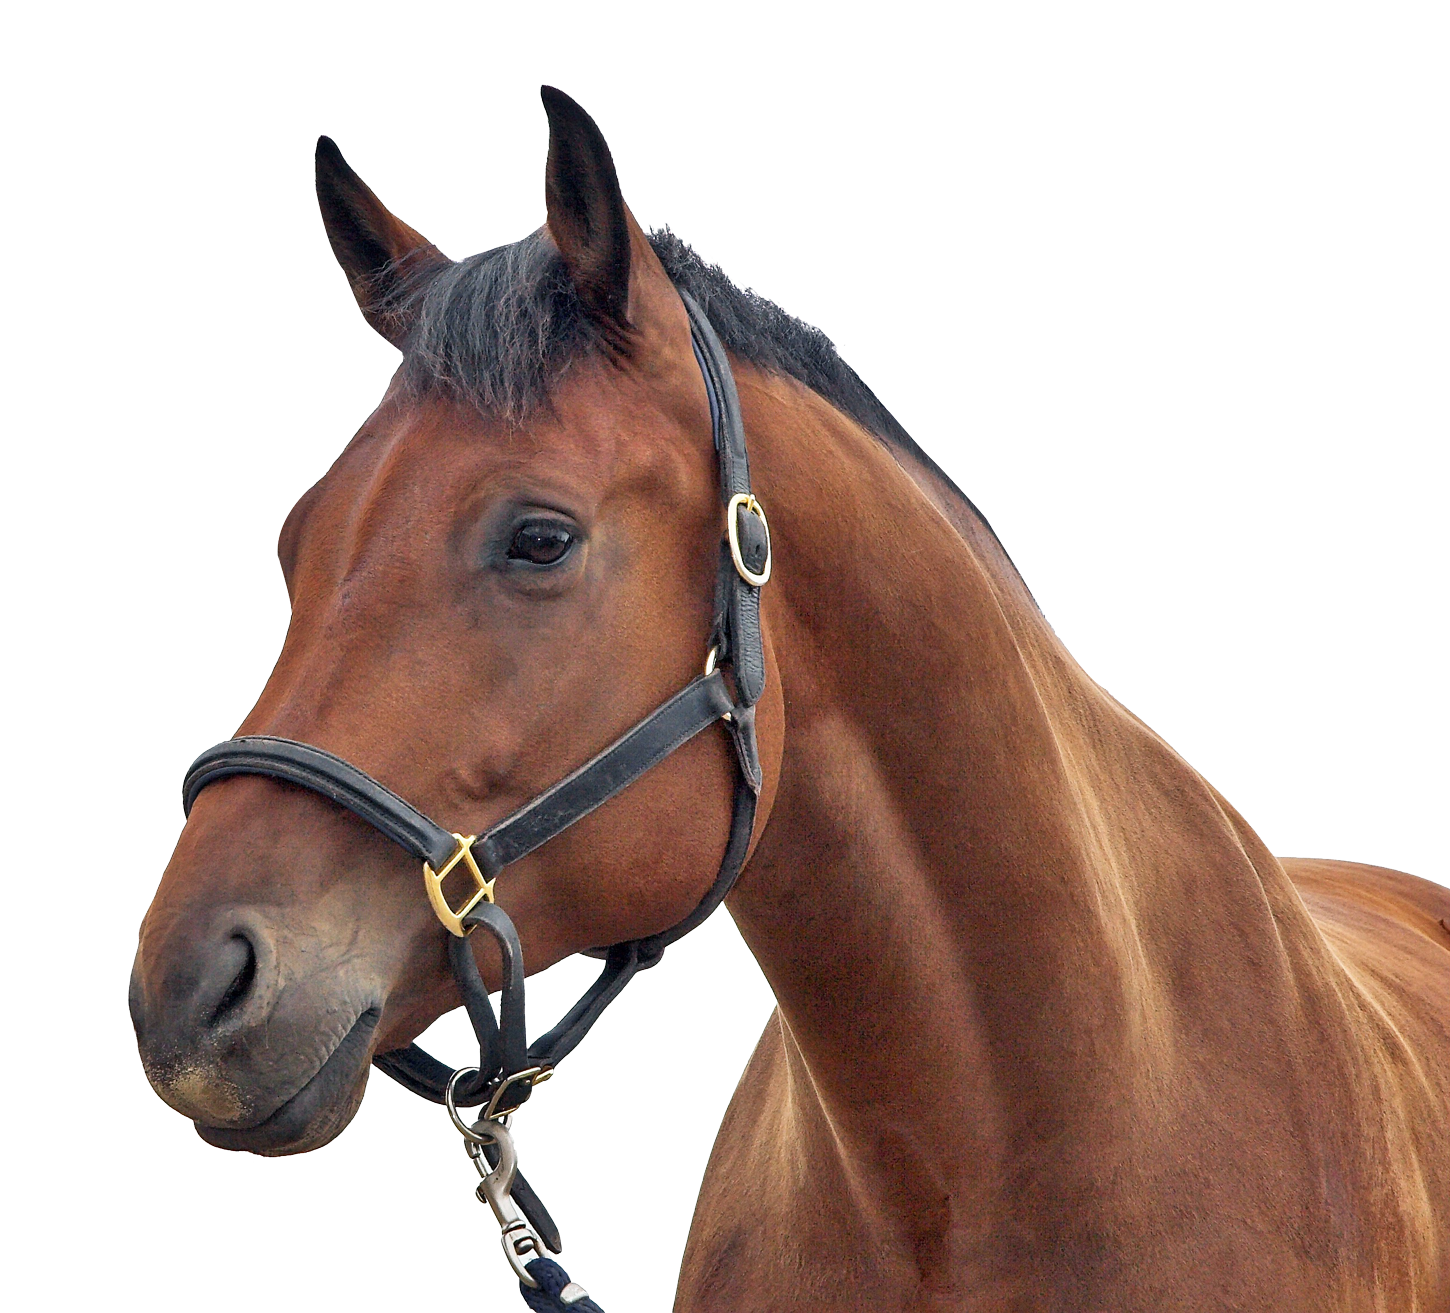 Horse PNG - 26996